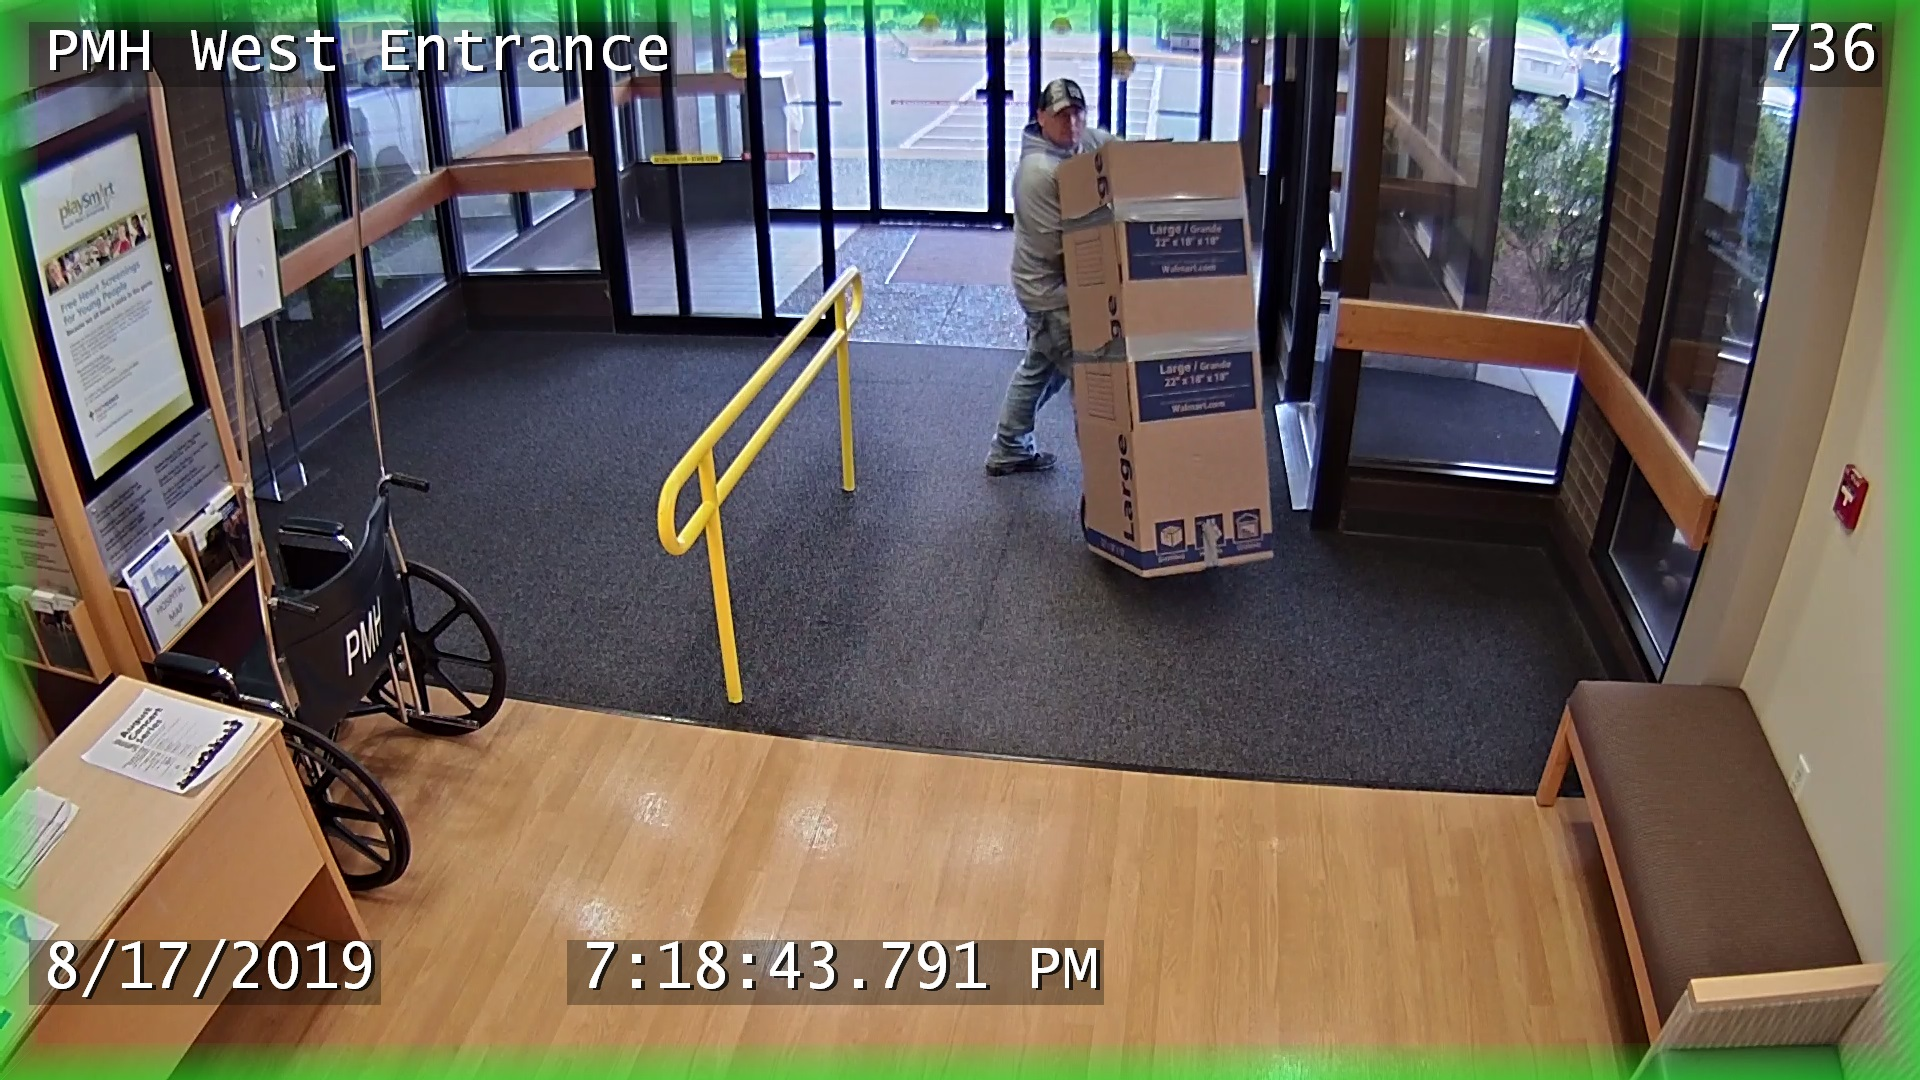 Still photos from surveillance footage inside Providence Milwaukie Hospital show a man wheeling an ATM covered by a cardboard box out the hospital with a hand cart August 17. If you recognize the suspect, call Milwaukie Police. (Photo courtesy of Milwaukie Police)